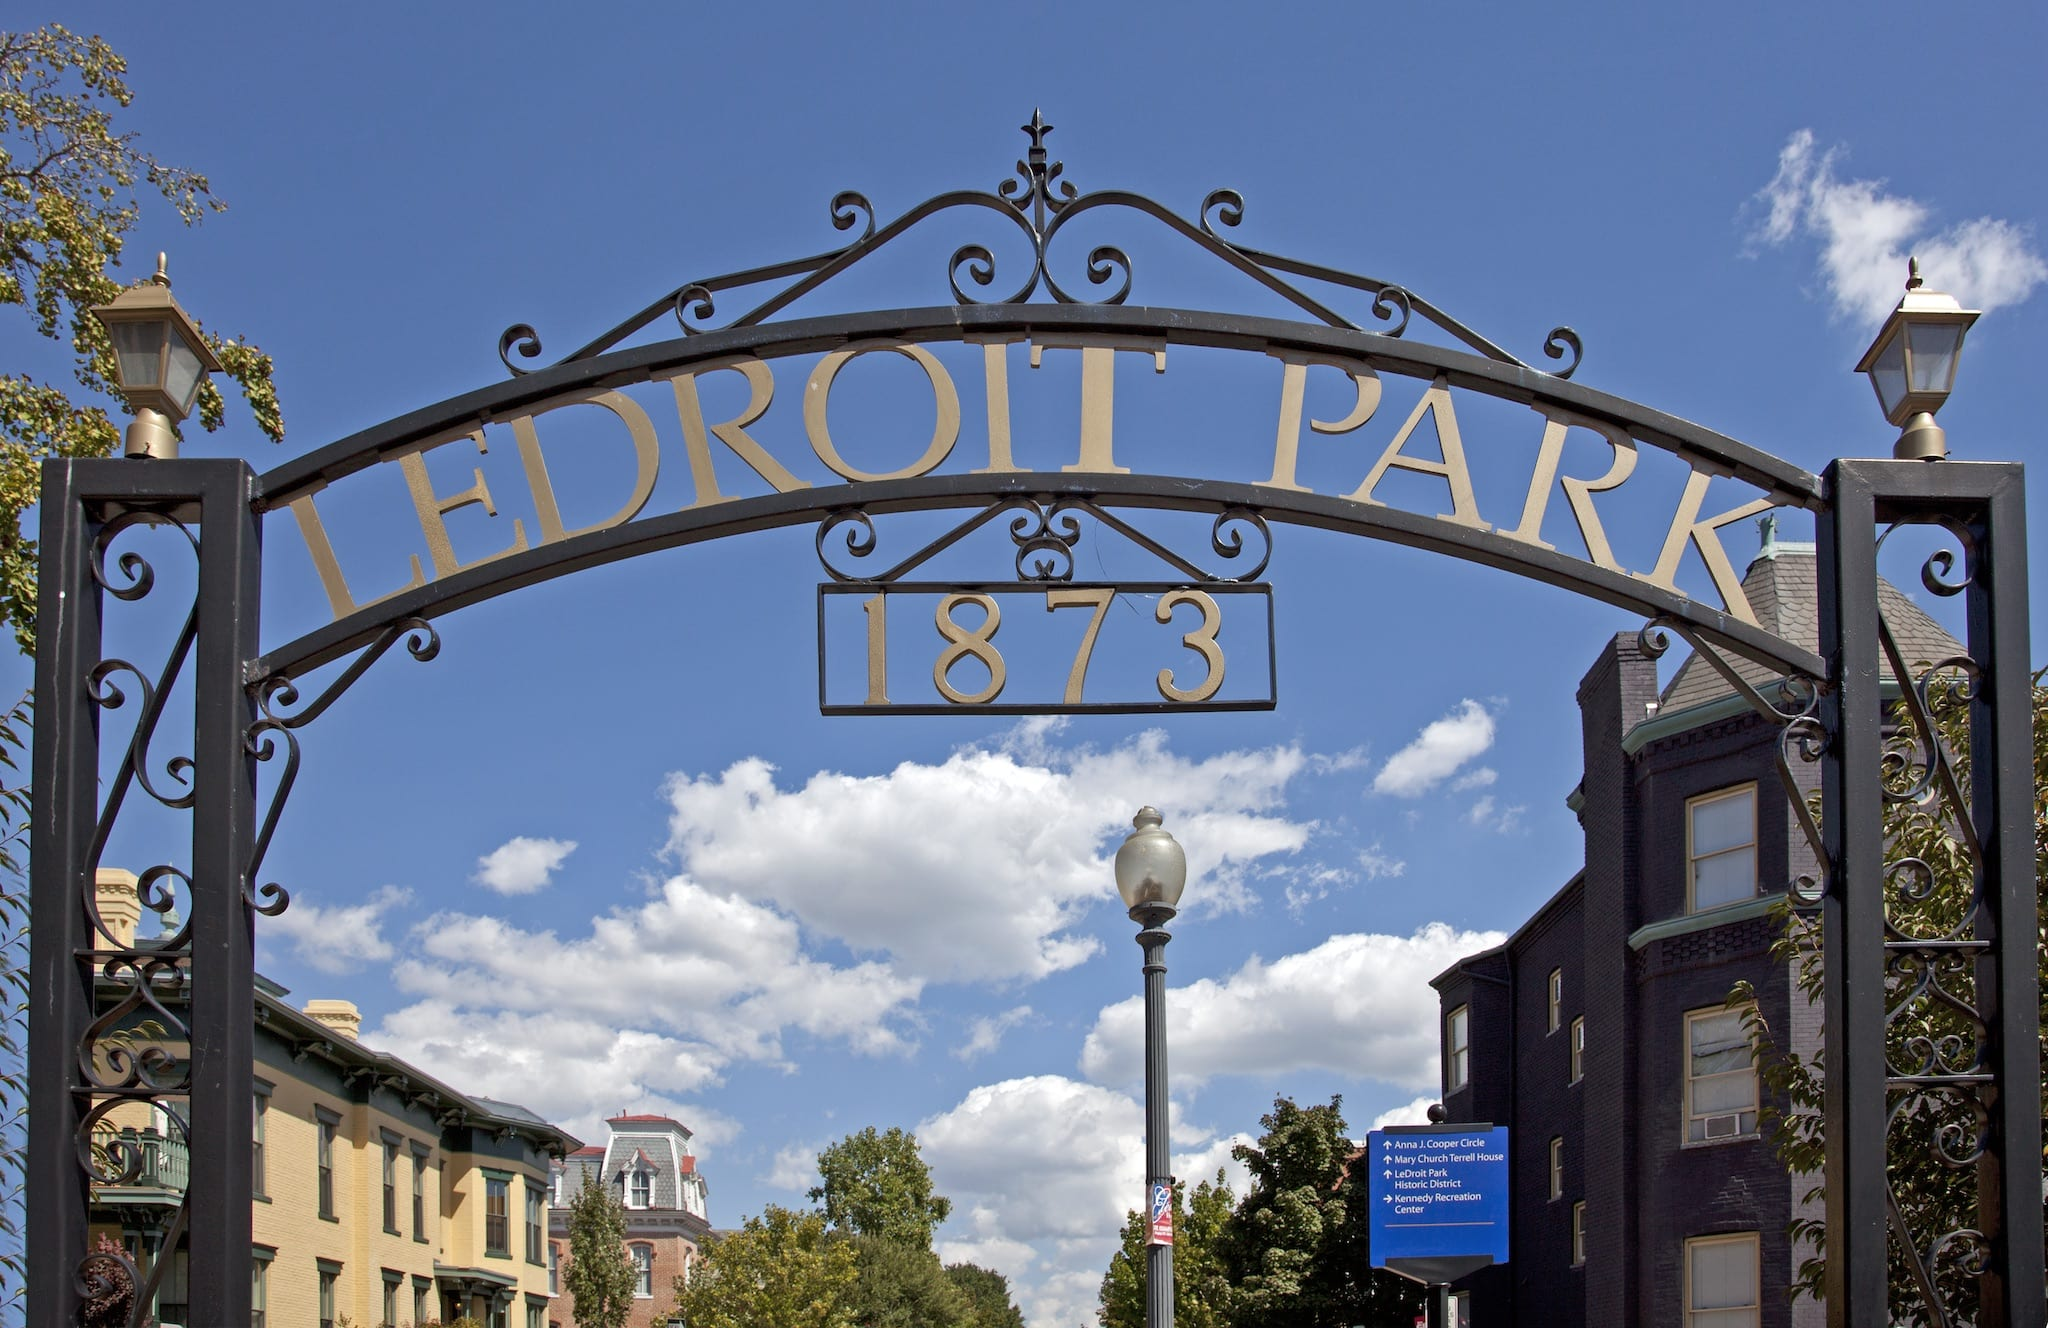 Why Is It Named LeDroit Park?